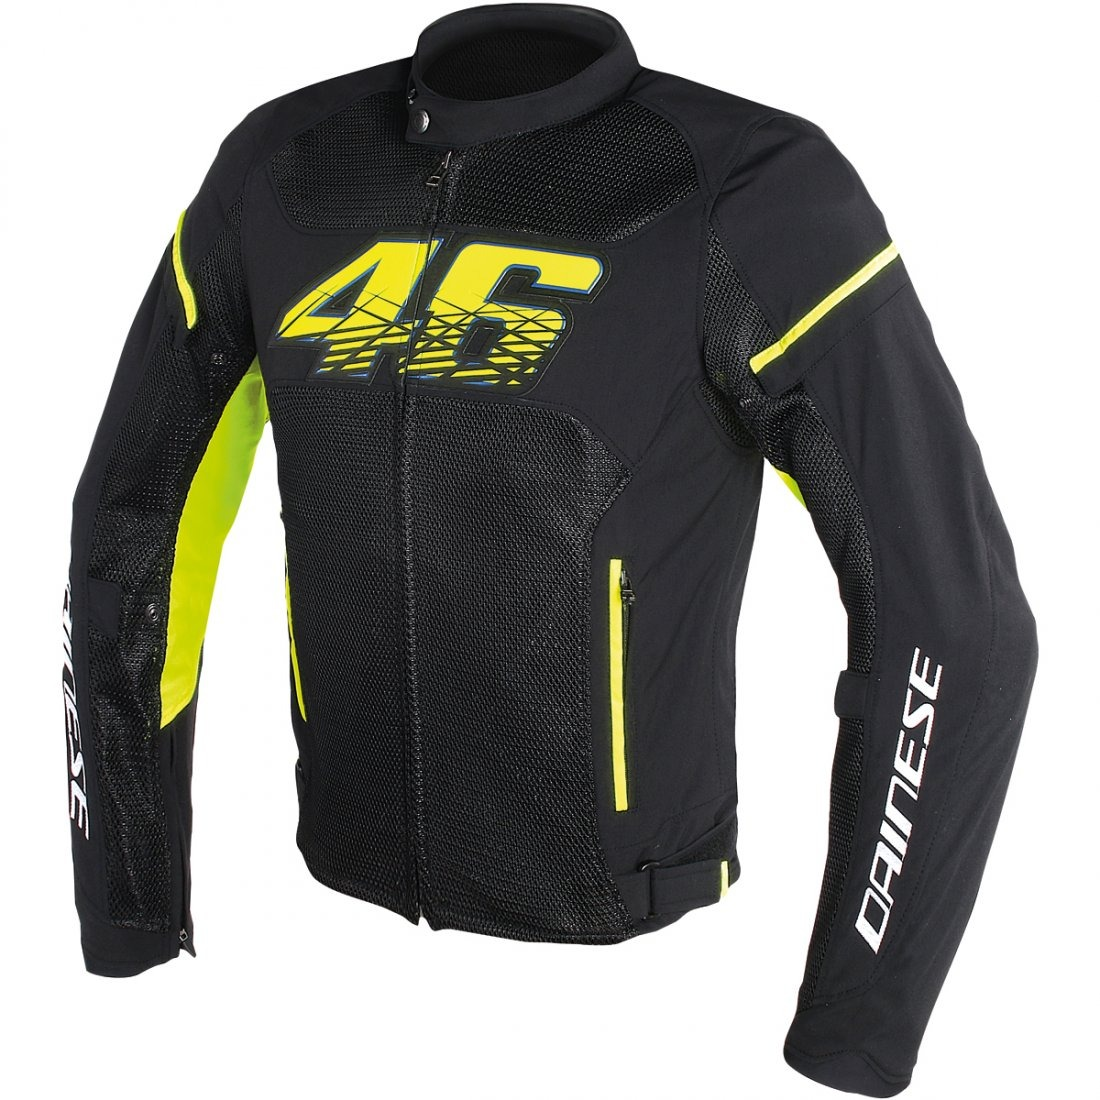 c138a9d2706 campera touring dainese air tex d1 valentino rossi vr46. Cargando zoom.